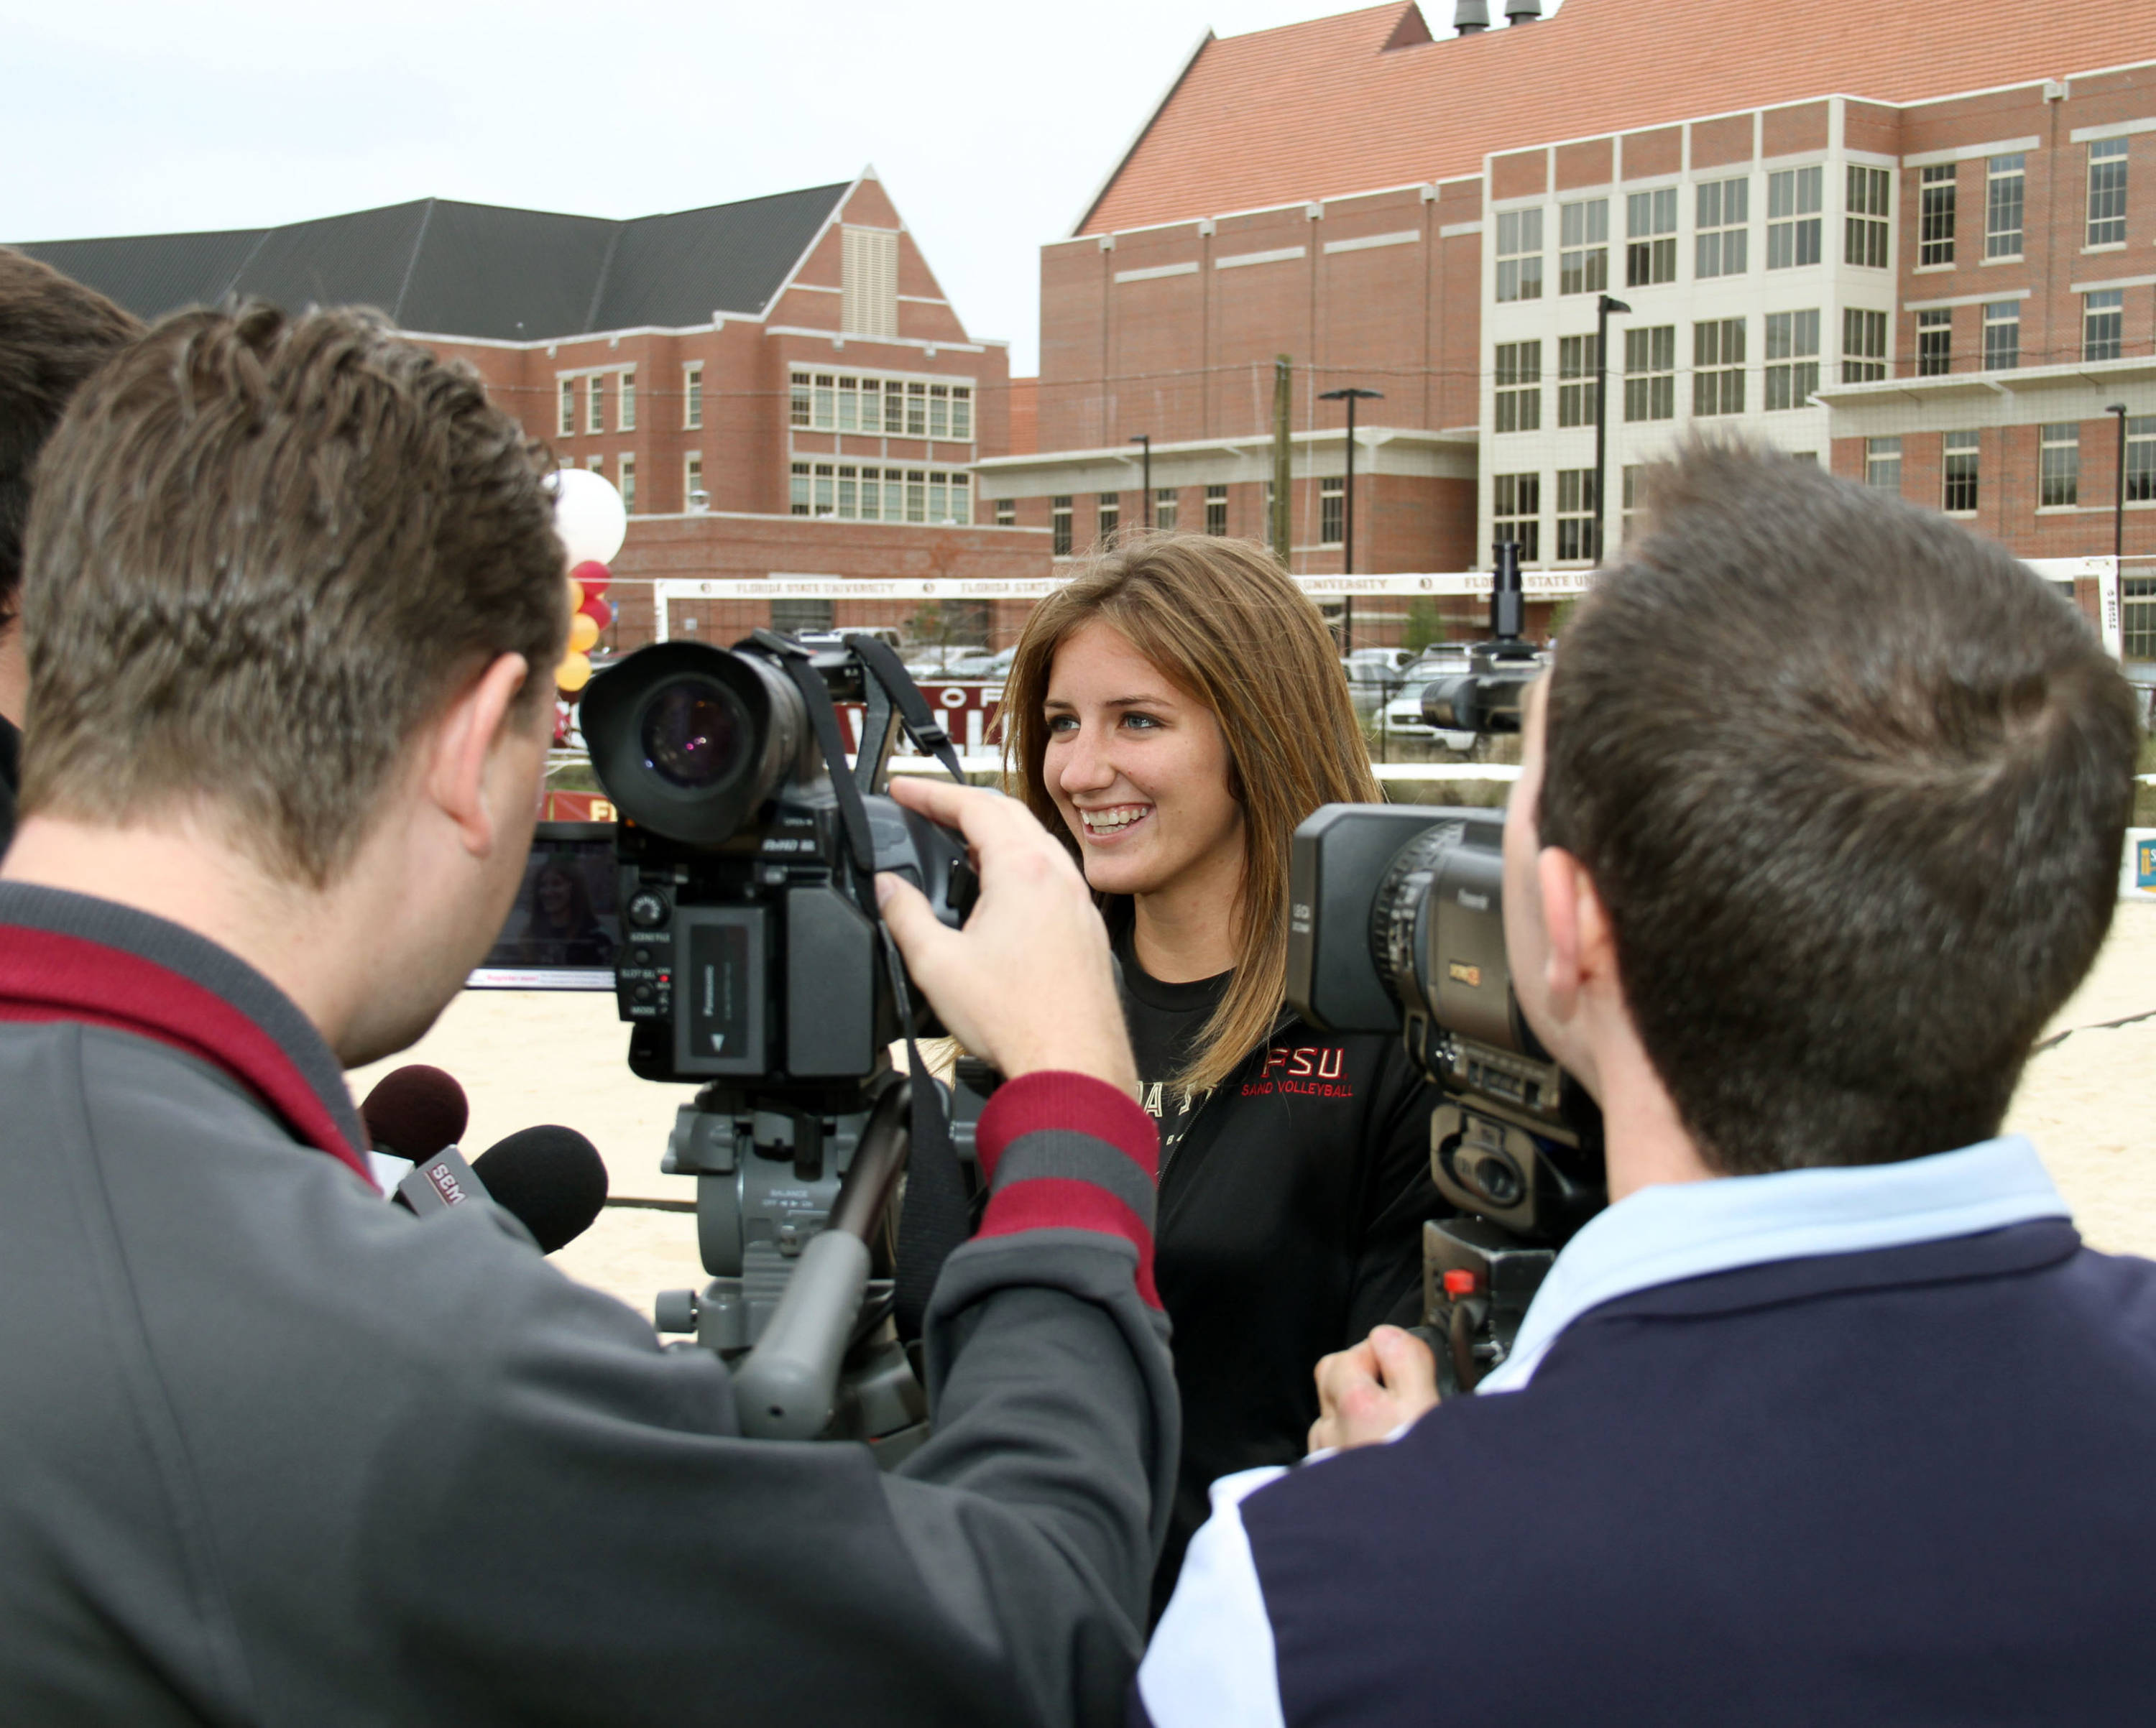 Sand Volleyball Ribbon Cutting Ceremony on January 20, 2012 on the FSU Campus Aurora Newgard is interviewed after the ceremony